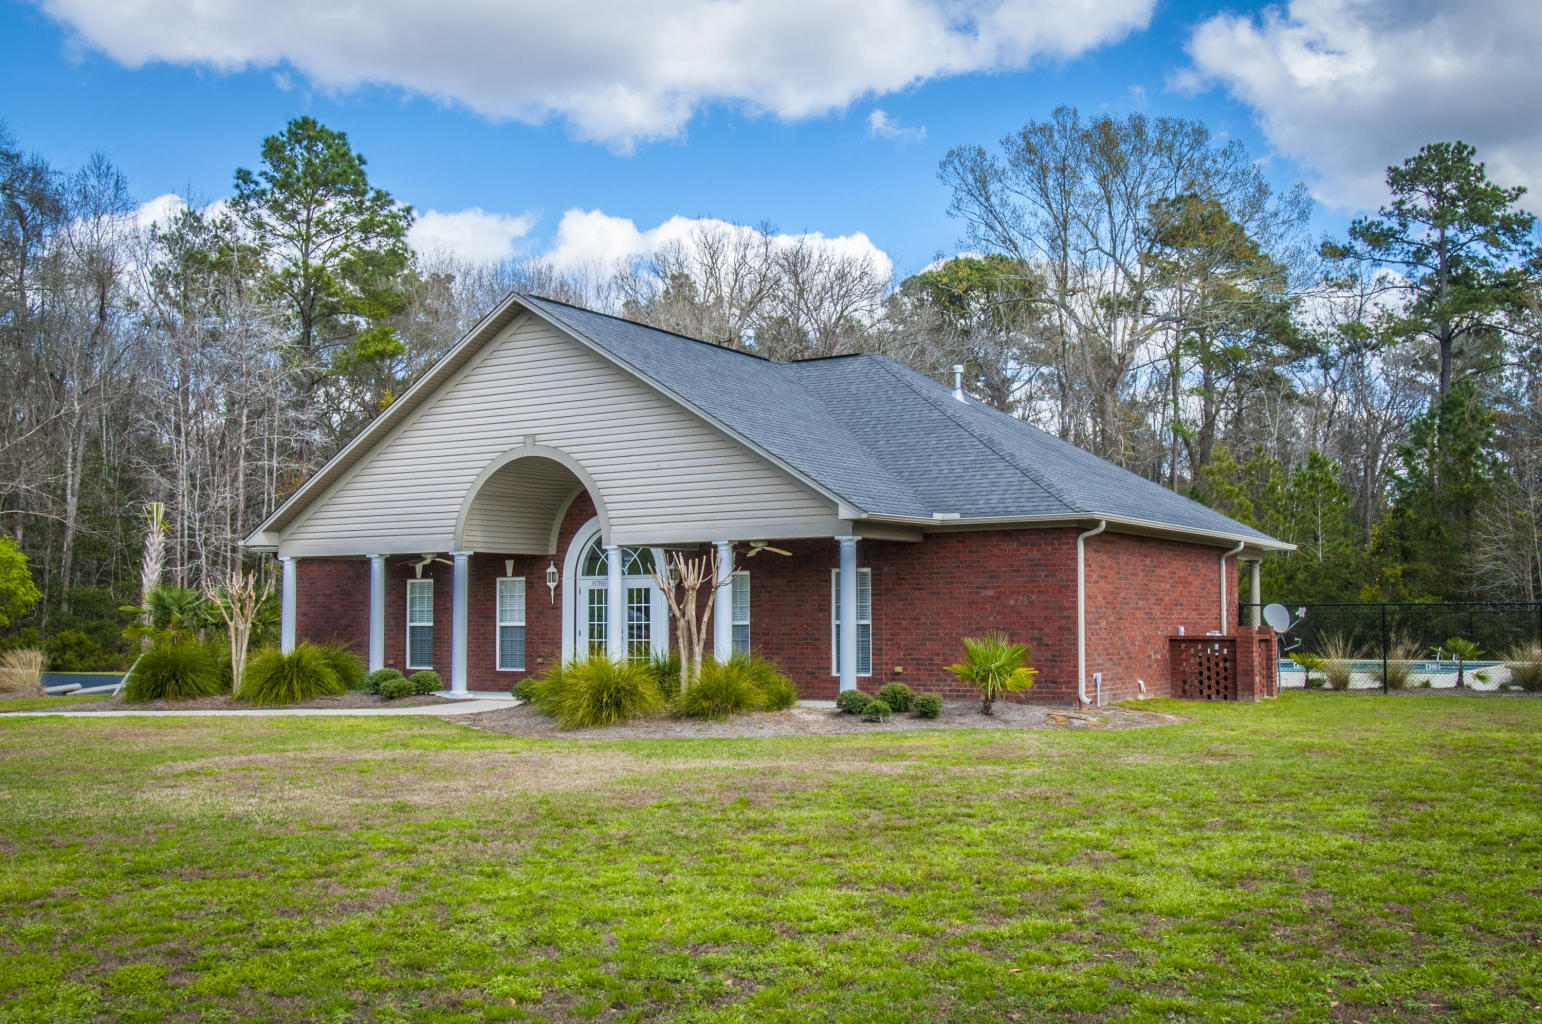 Photo of 5430 Clearview Dr, North Charleston, SC 29420